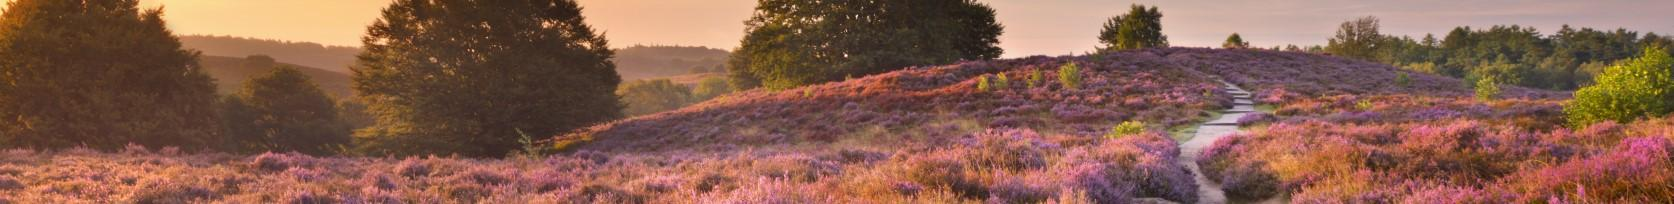 Path through blooming heather at sunrise in The Netherlands, by Sara Winter